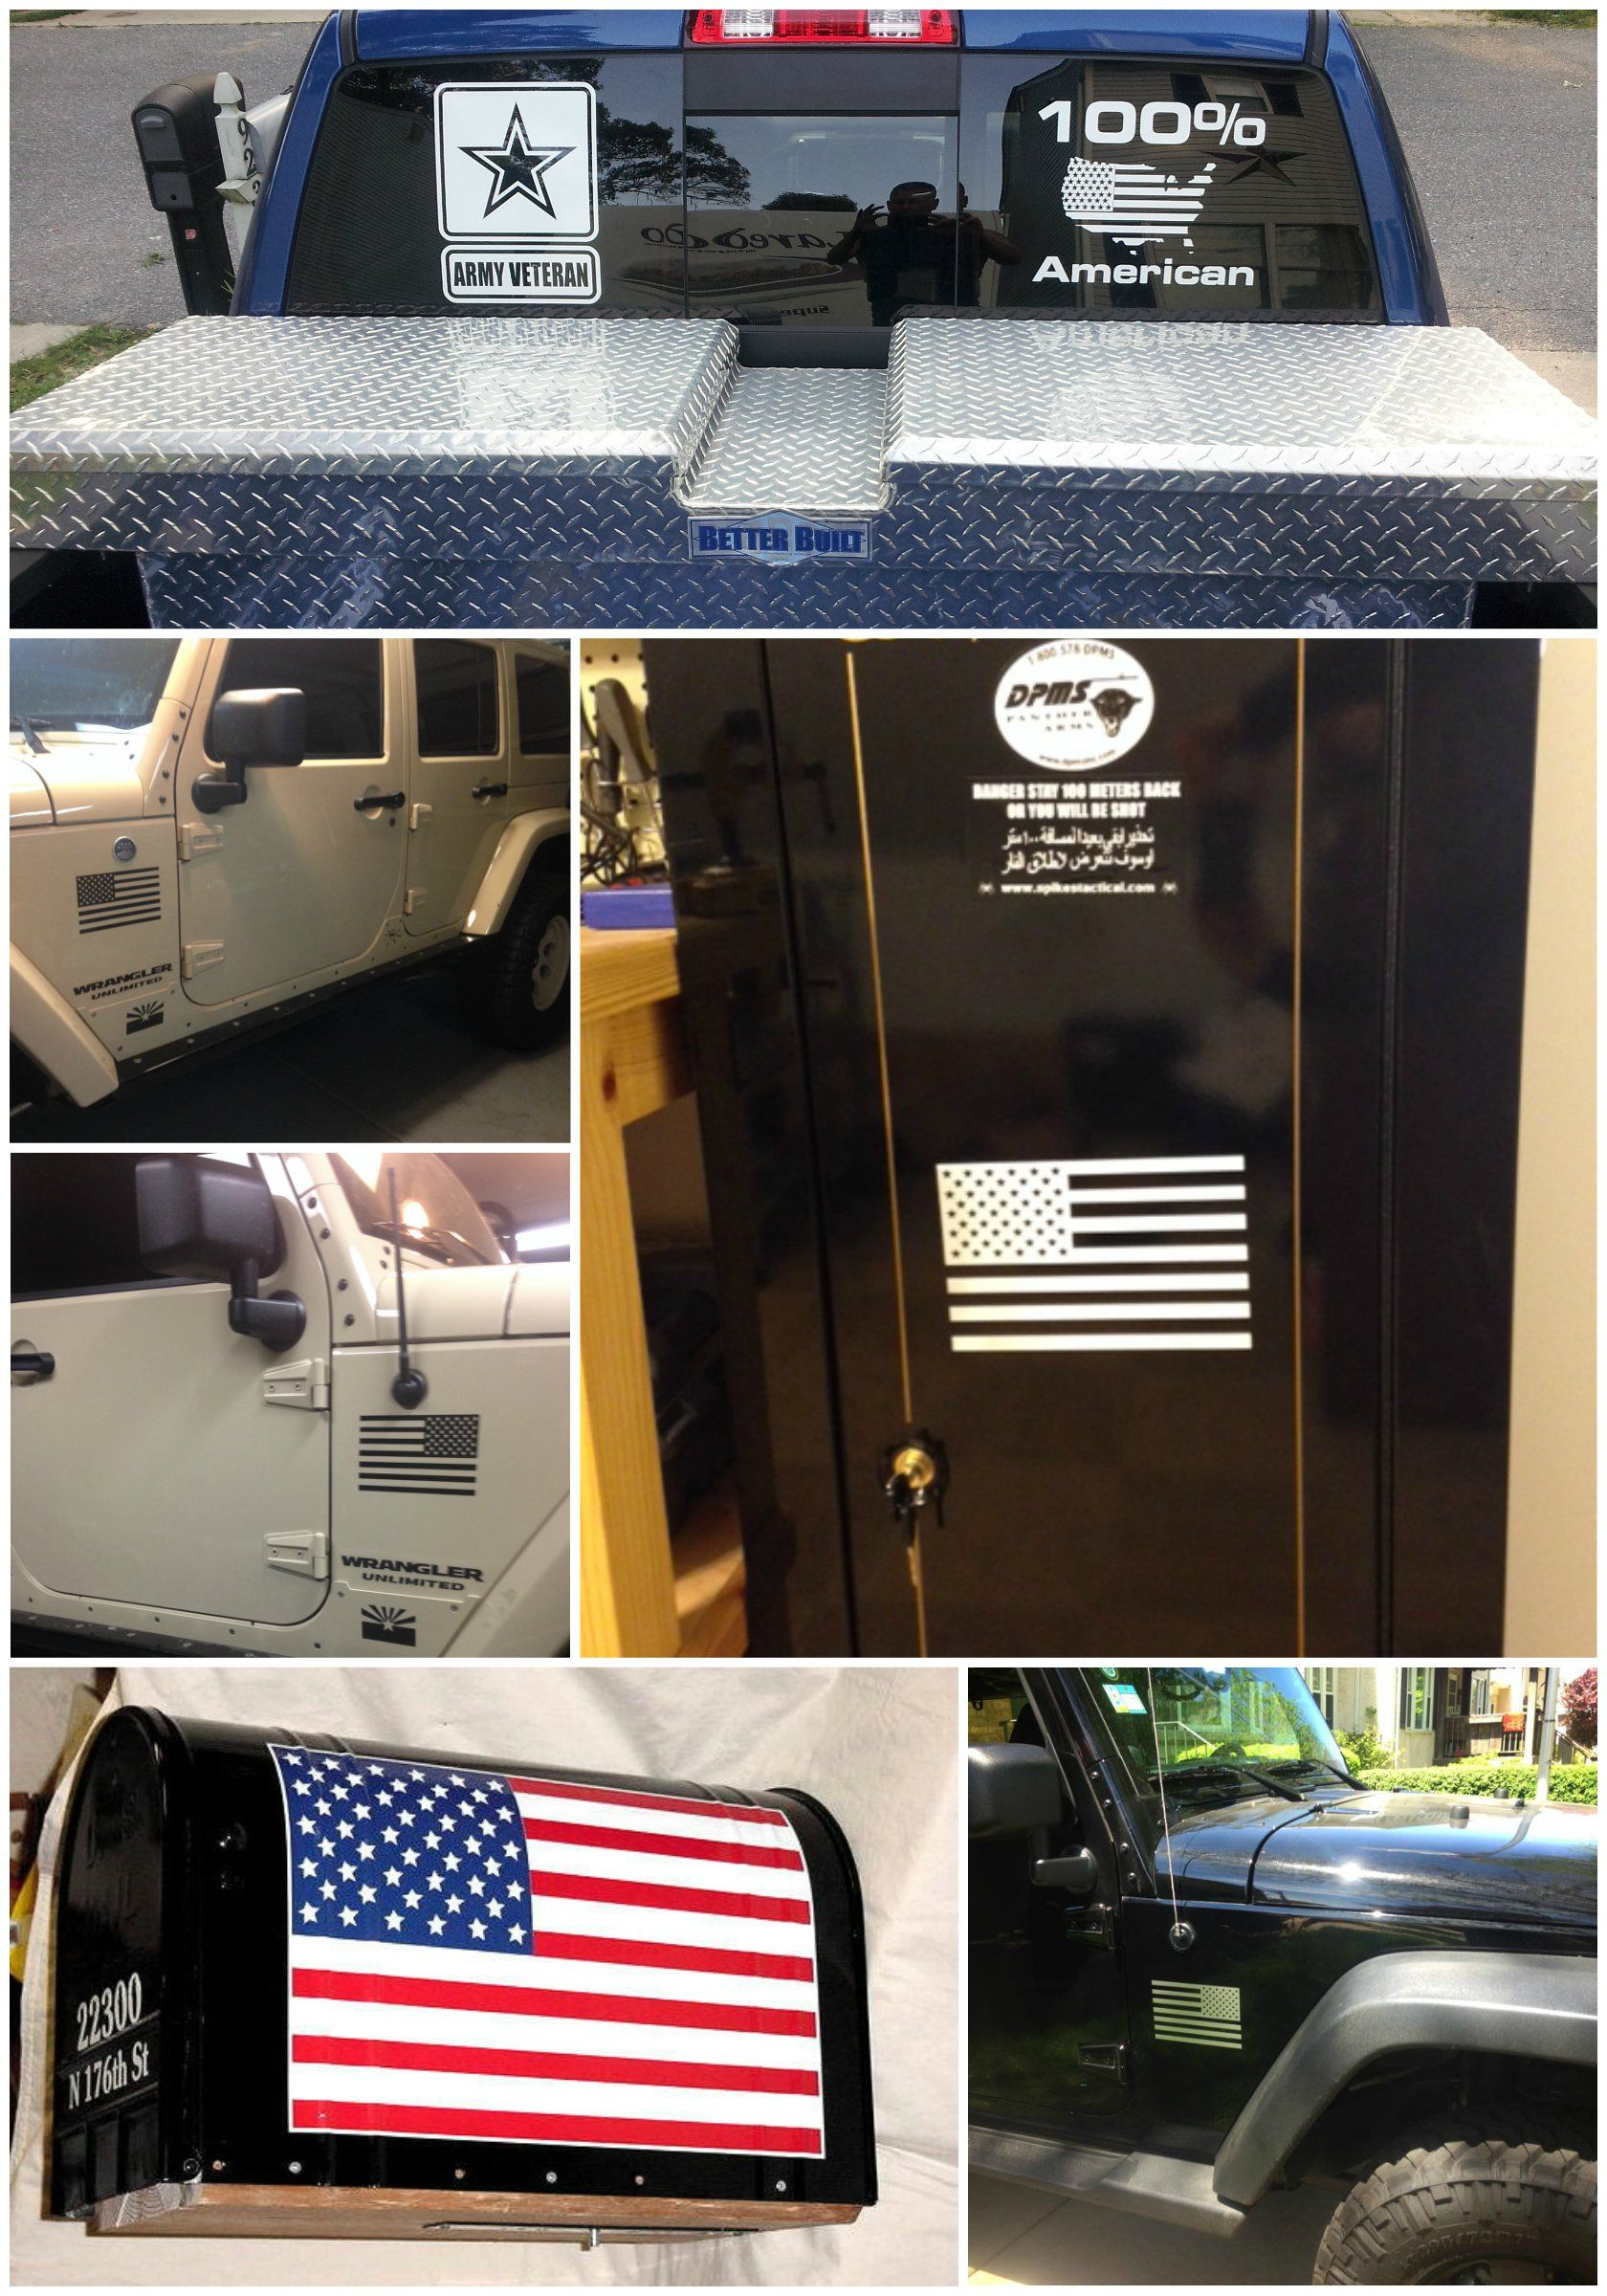 American Flag Decals For Jeeps Stickers For My Jeep Pinterest - Custom windo decals for jeepsjeep wrangler side decals and stickers jeep gear partsmods